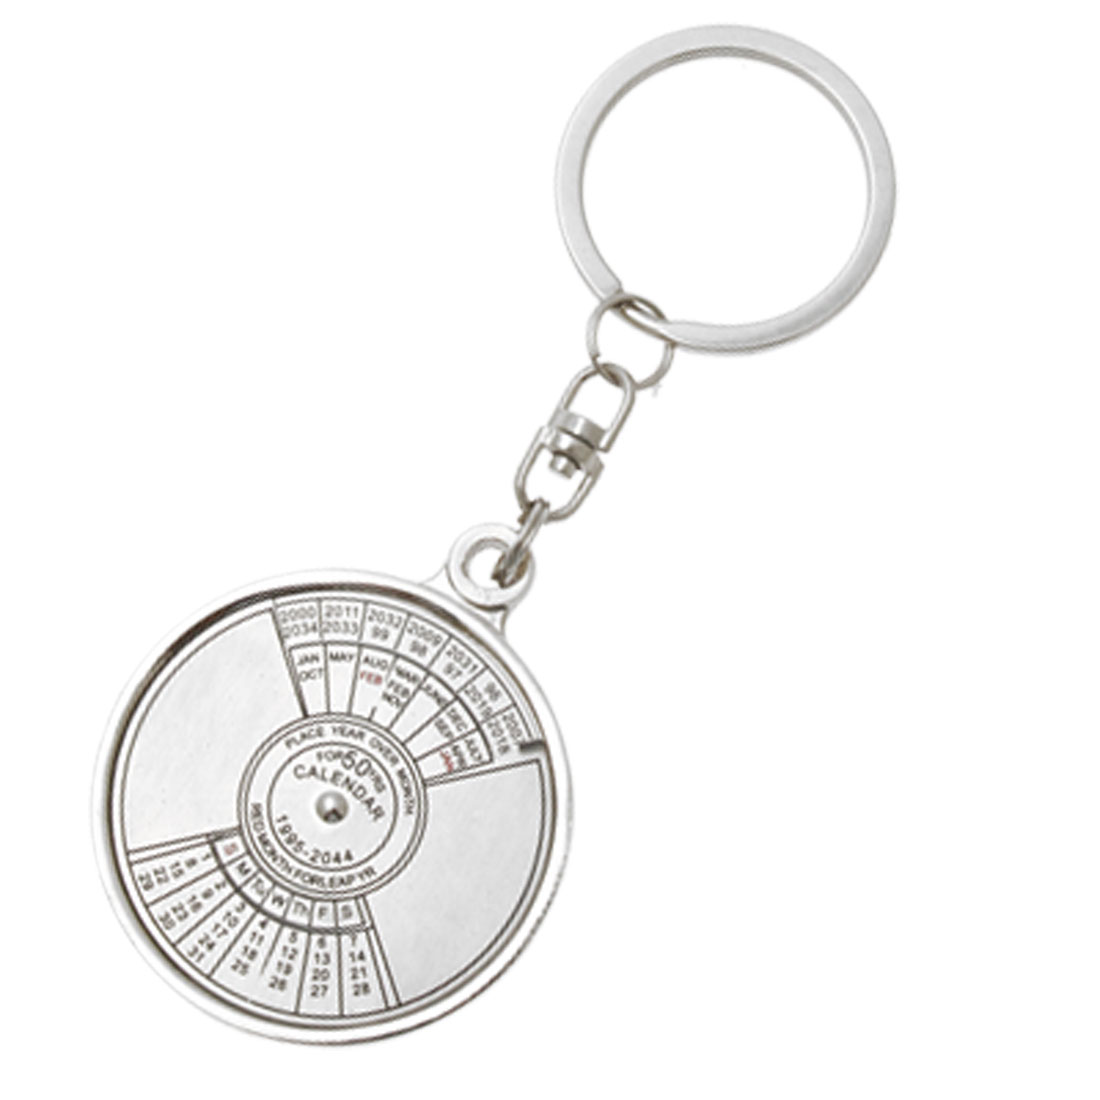 Silvery tone 50 Year Calendar 1995-2044 Keychain Keyring with Spin Function